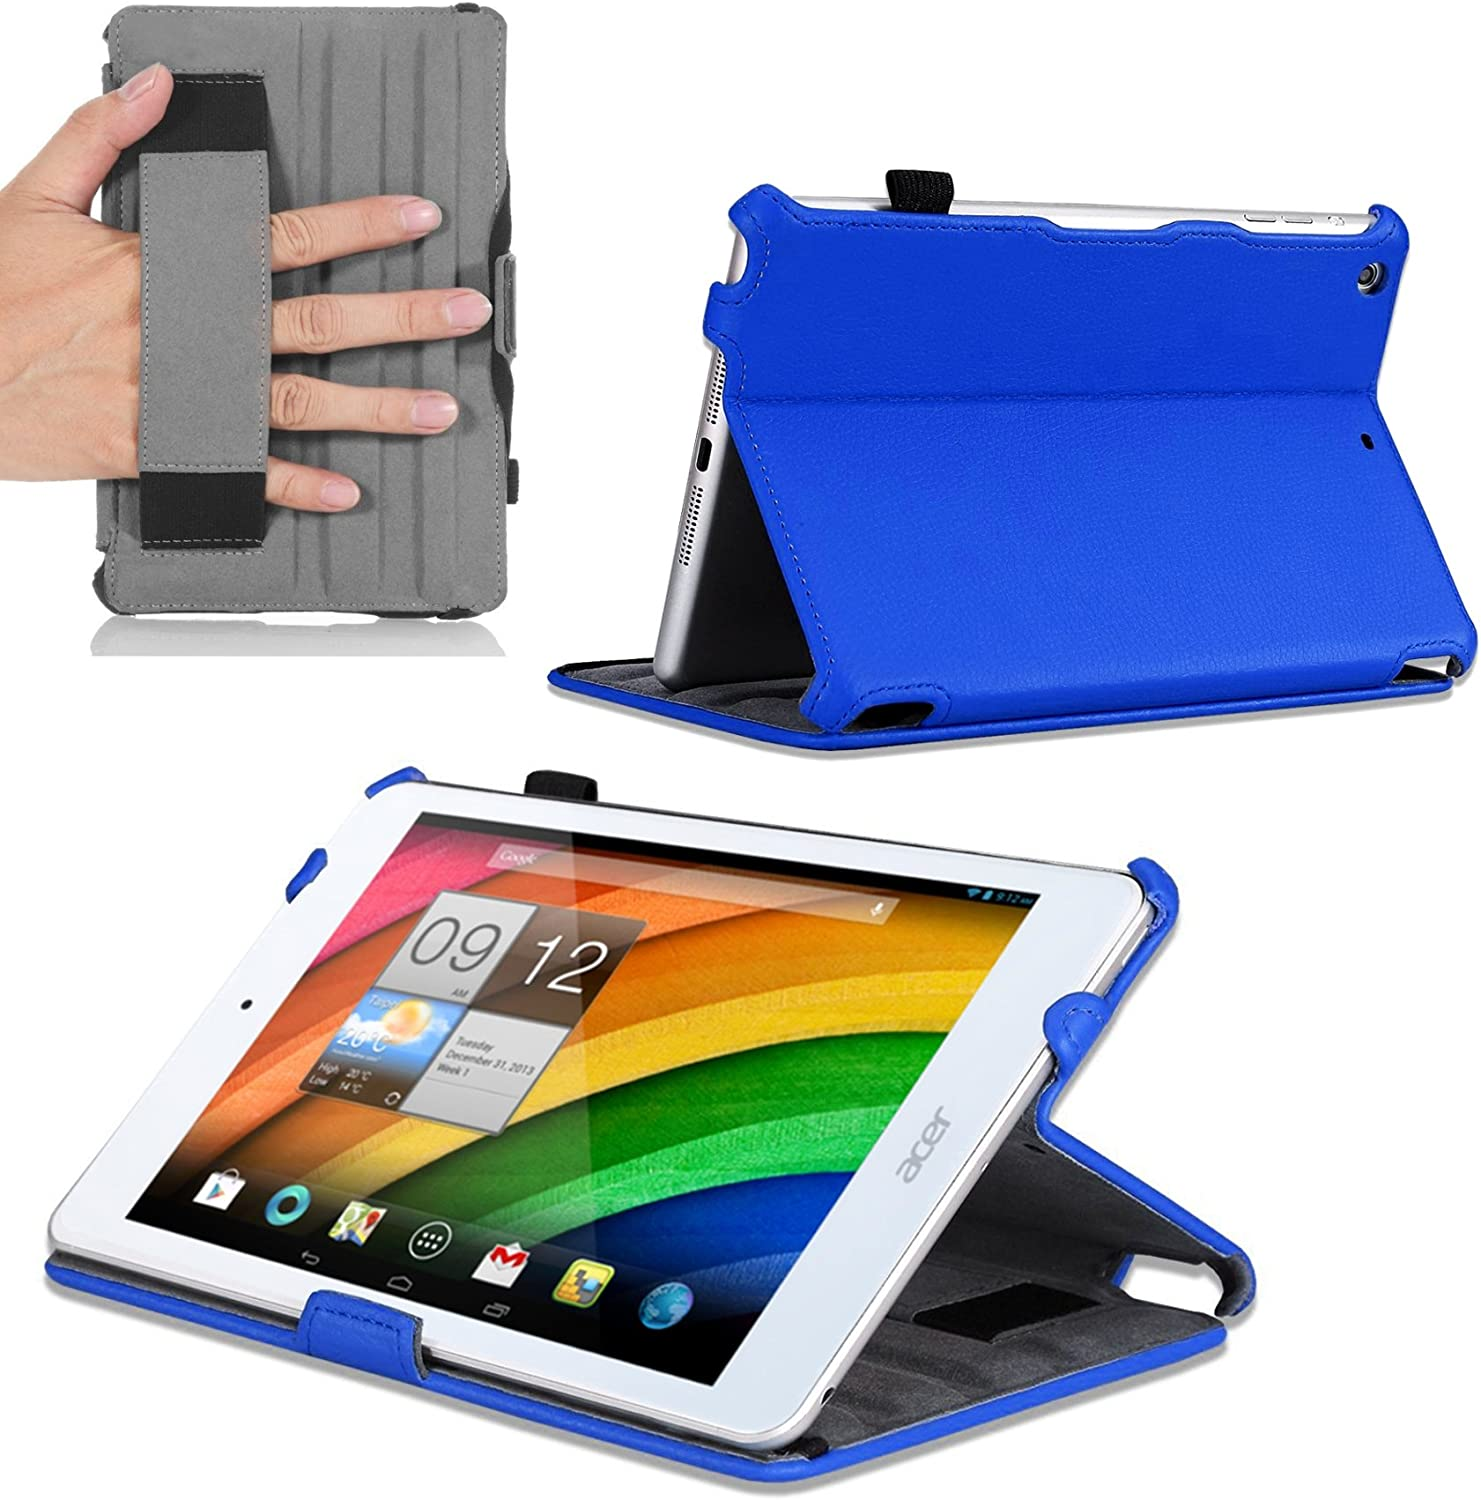 Navitech Blue Leather Hard Case/Cover with Automatic Sleep/Wake Compatible with The Acer Iconia A1 830